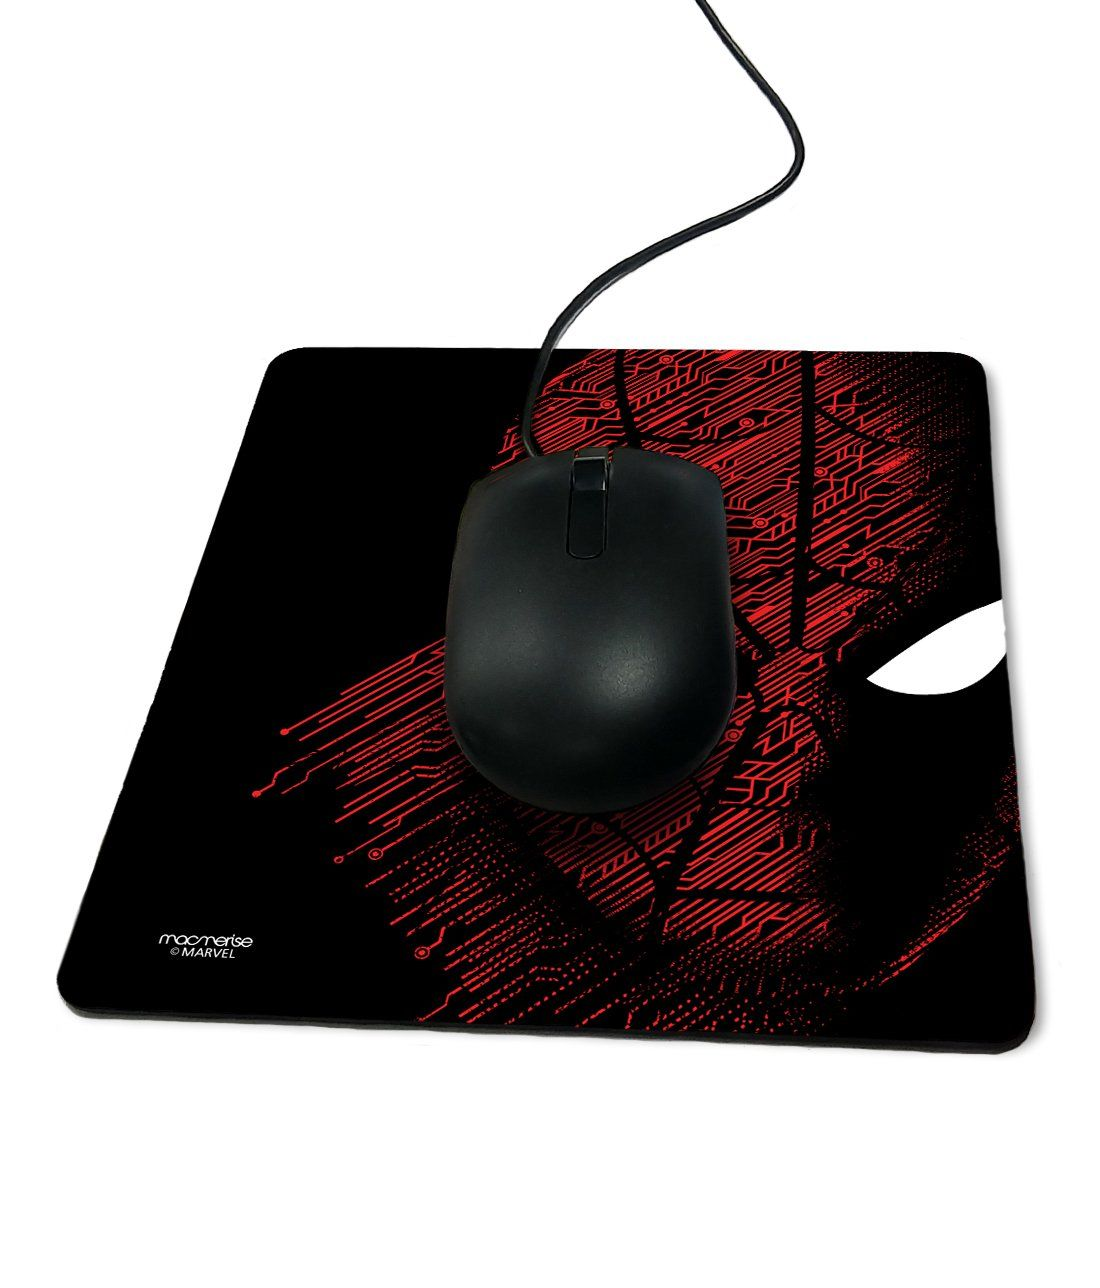 Sketch Out Spiderman - Macmerise Mouse Pad